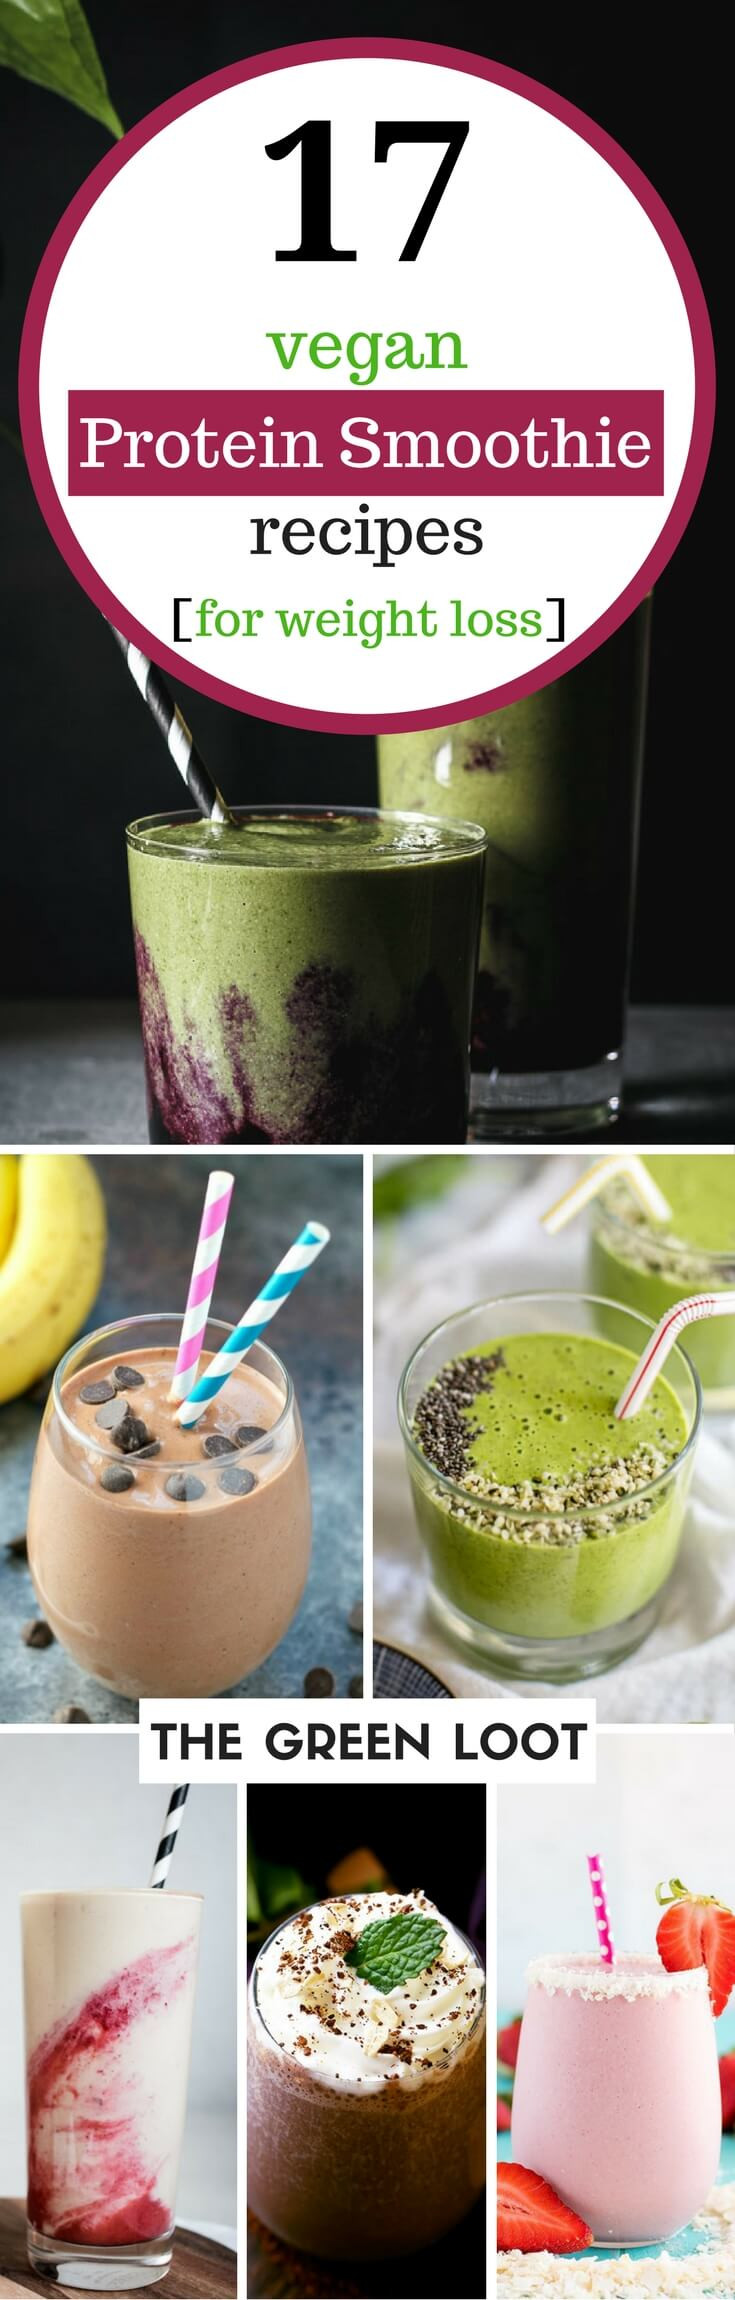 Dairy Free Weight Loss Smoothies  17 Tasty Vegan Protein Smoothie Recipes for Weight Loss